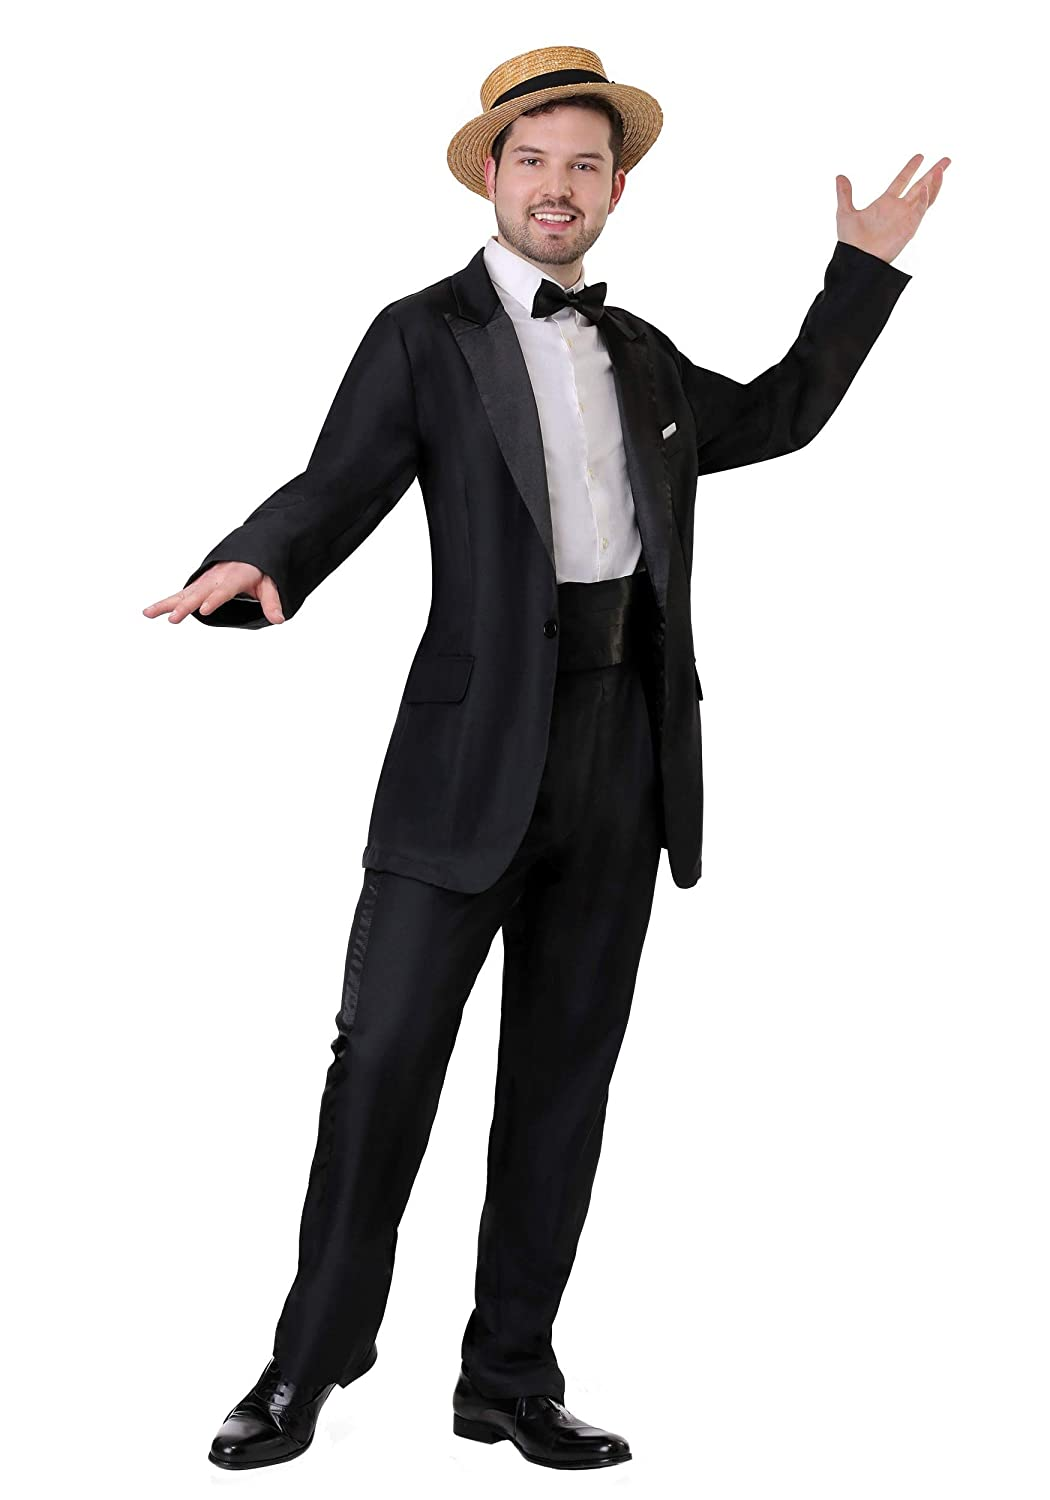 1950s Men's Costumes: Greaser, Elvis, Rockabilly, Prom Mens I Love Lucy Ricky Ricardo Costume $34.99 AT vintagedancer.com